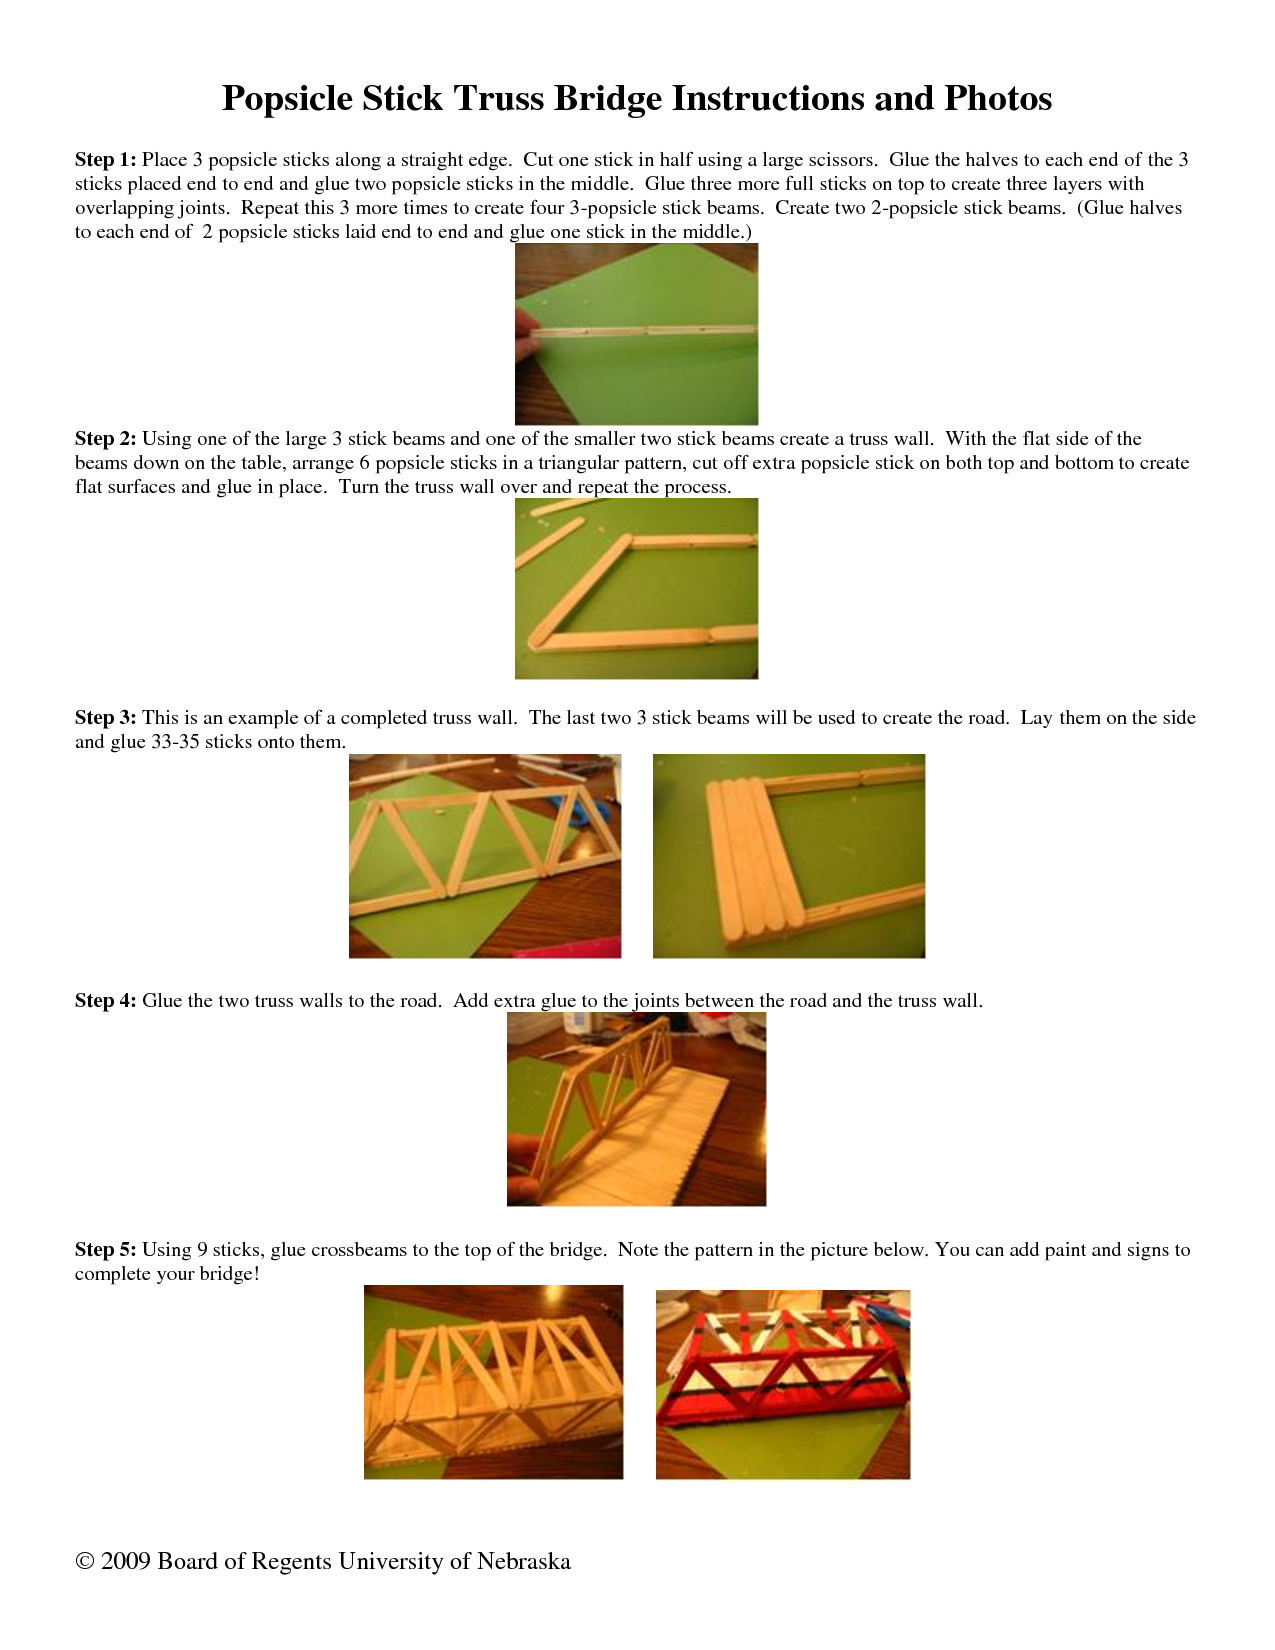 Popsicle Stick Bridge Instructions Popsicle Stick Truss Bridge